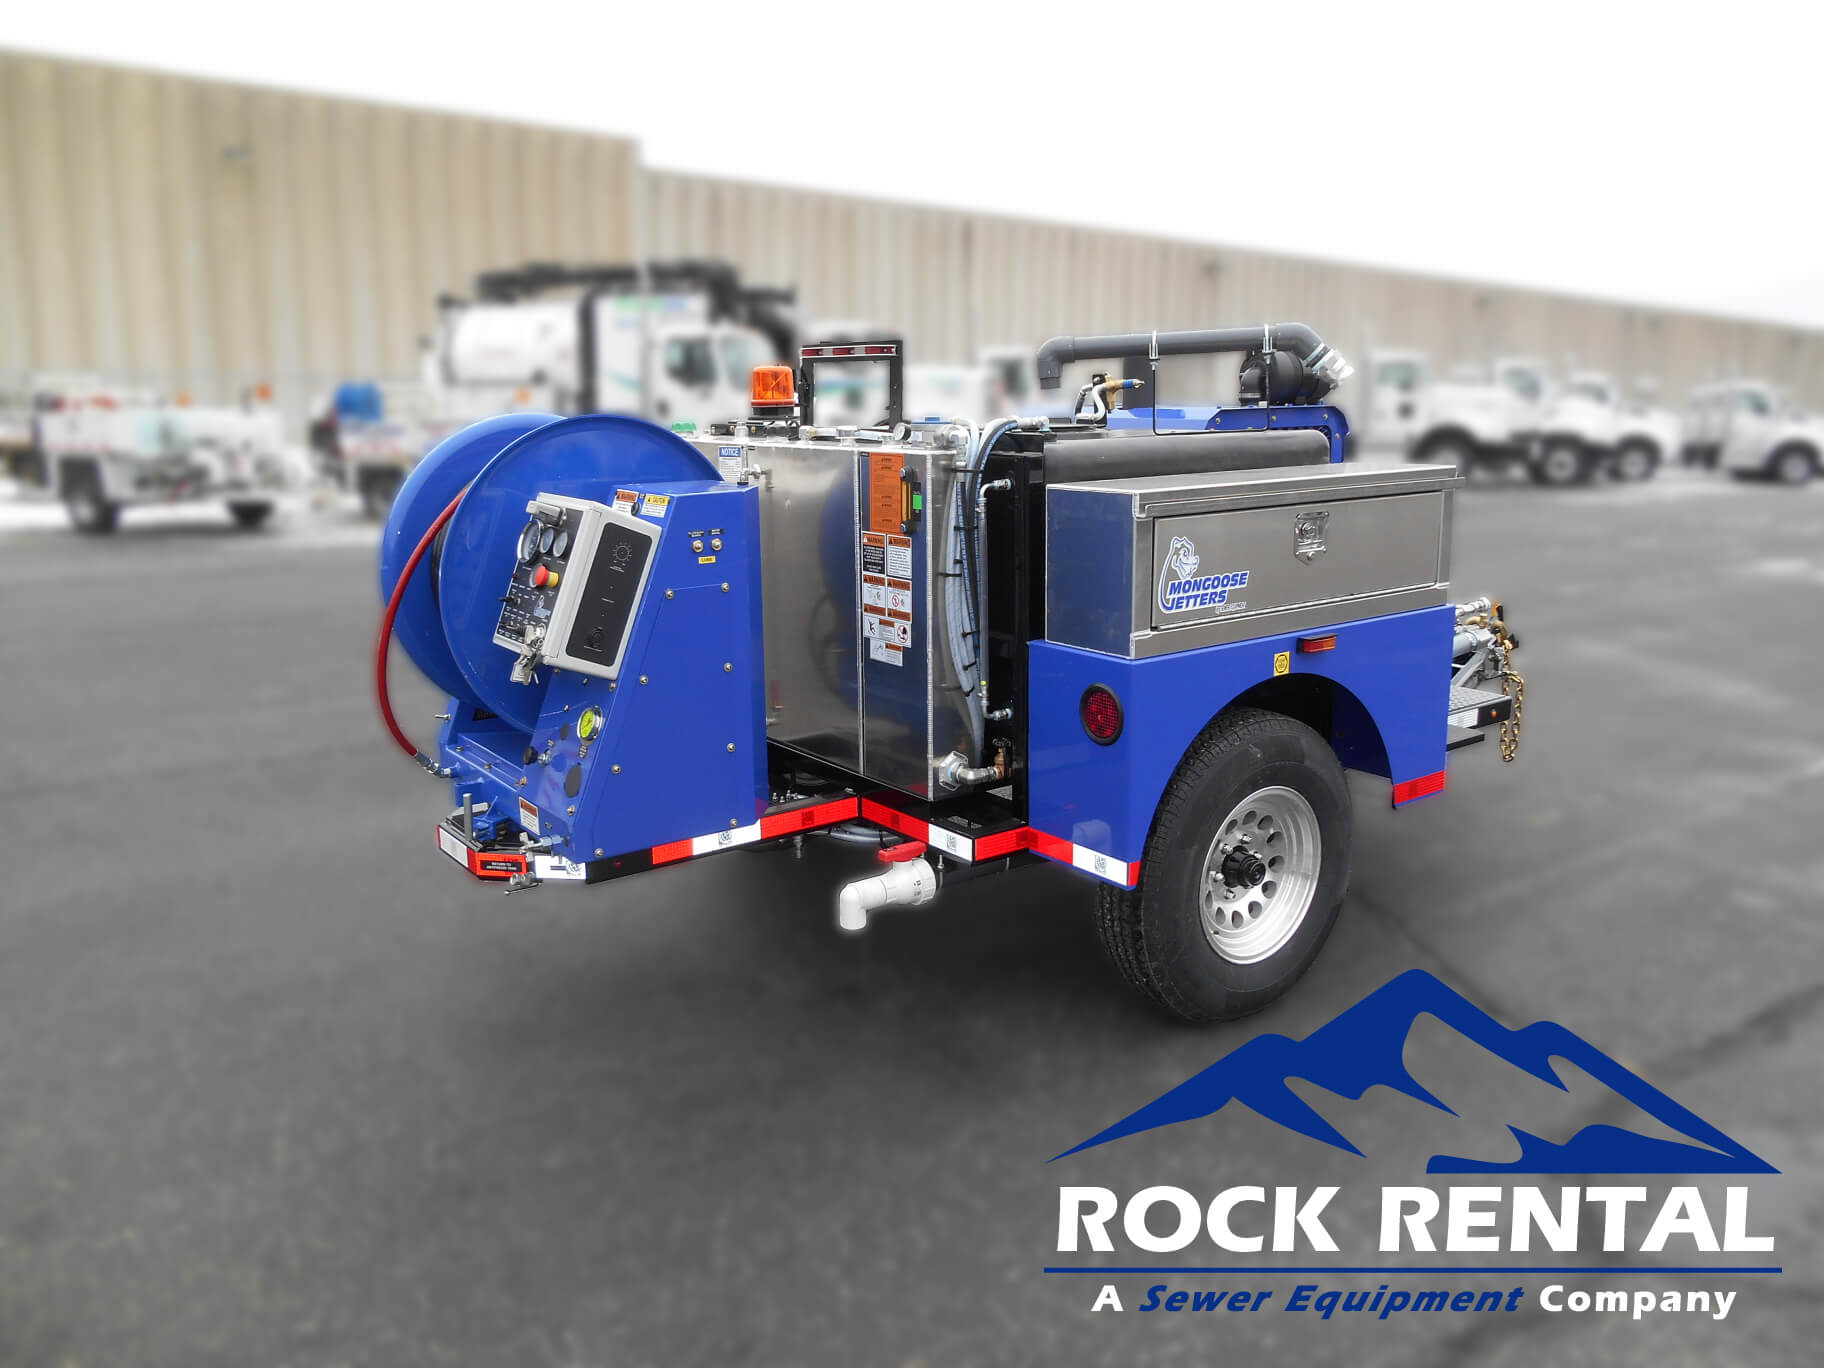 rock rental equipment